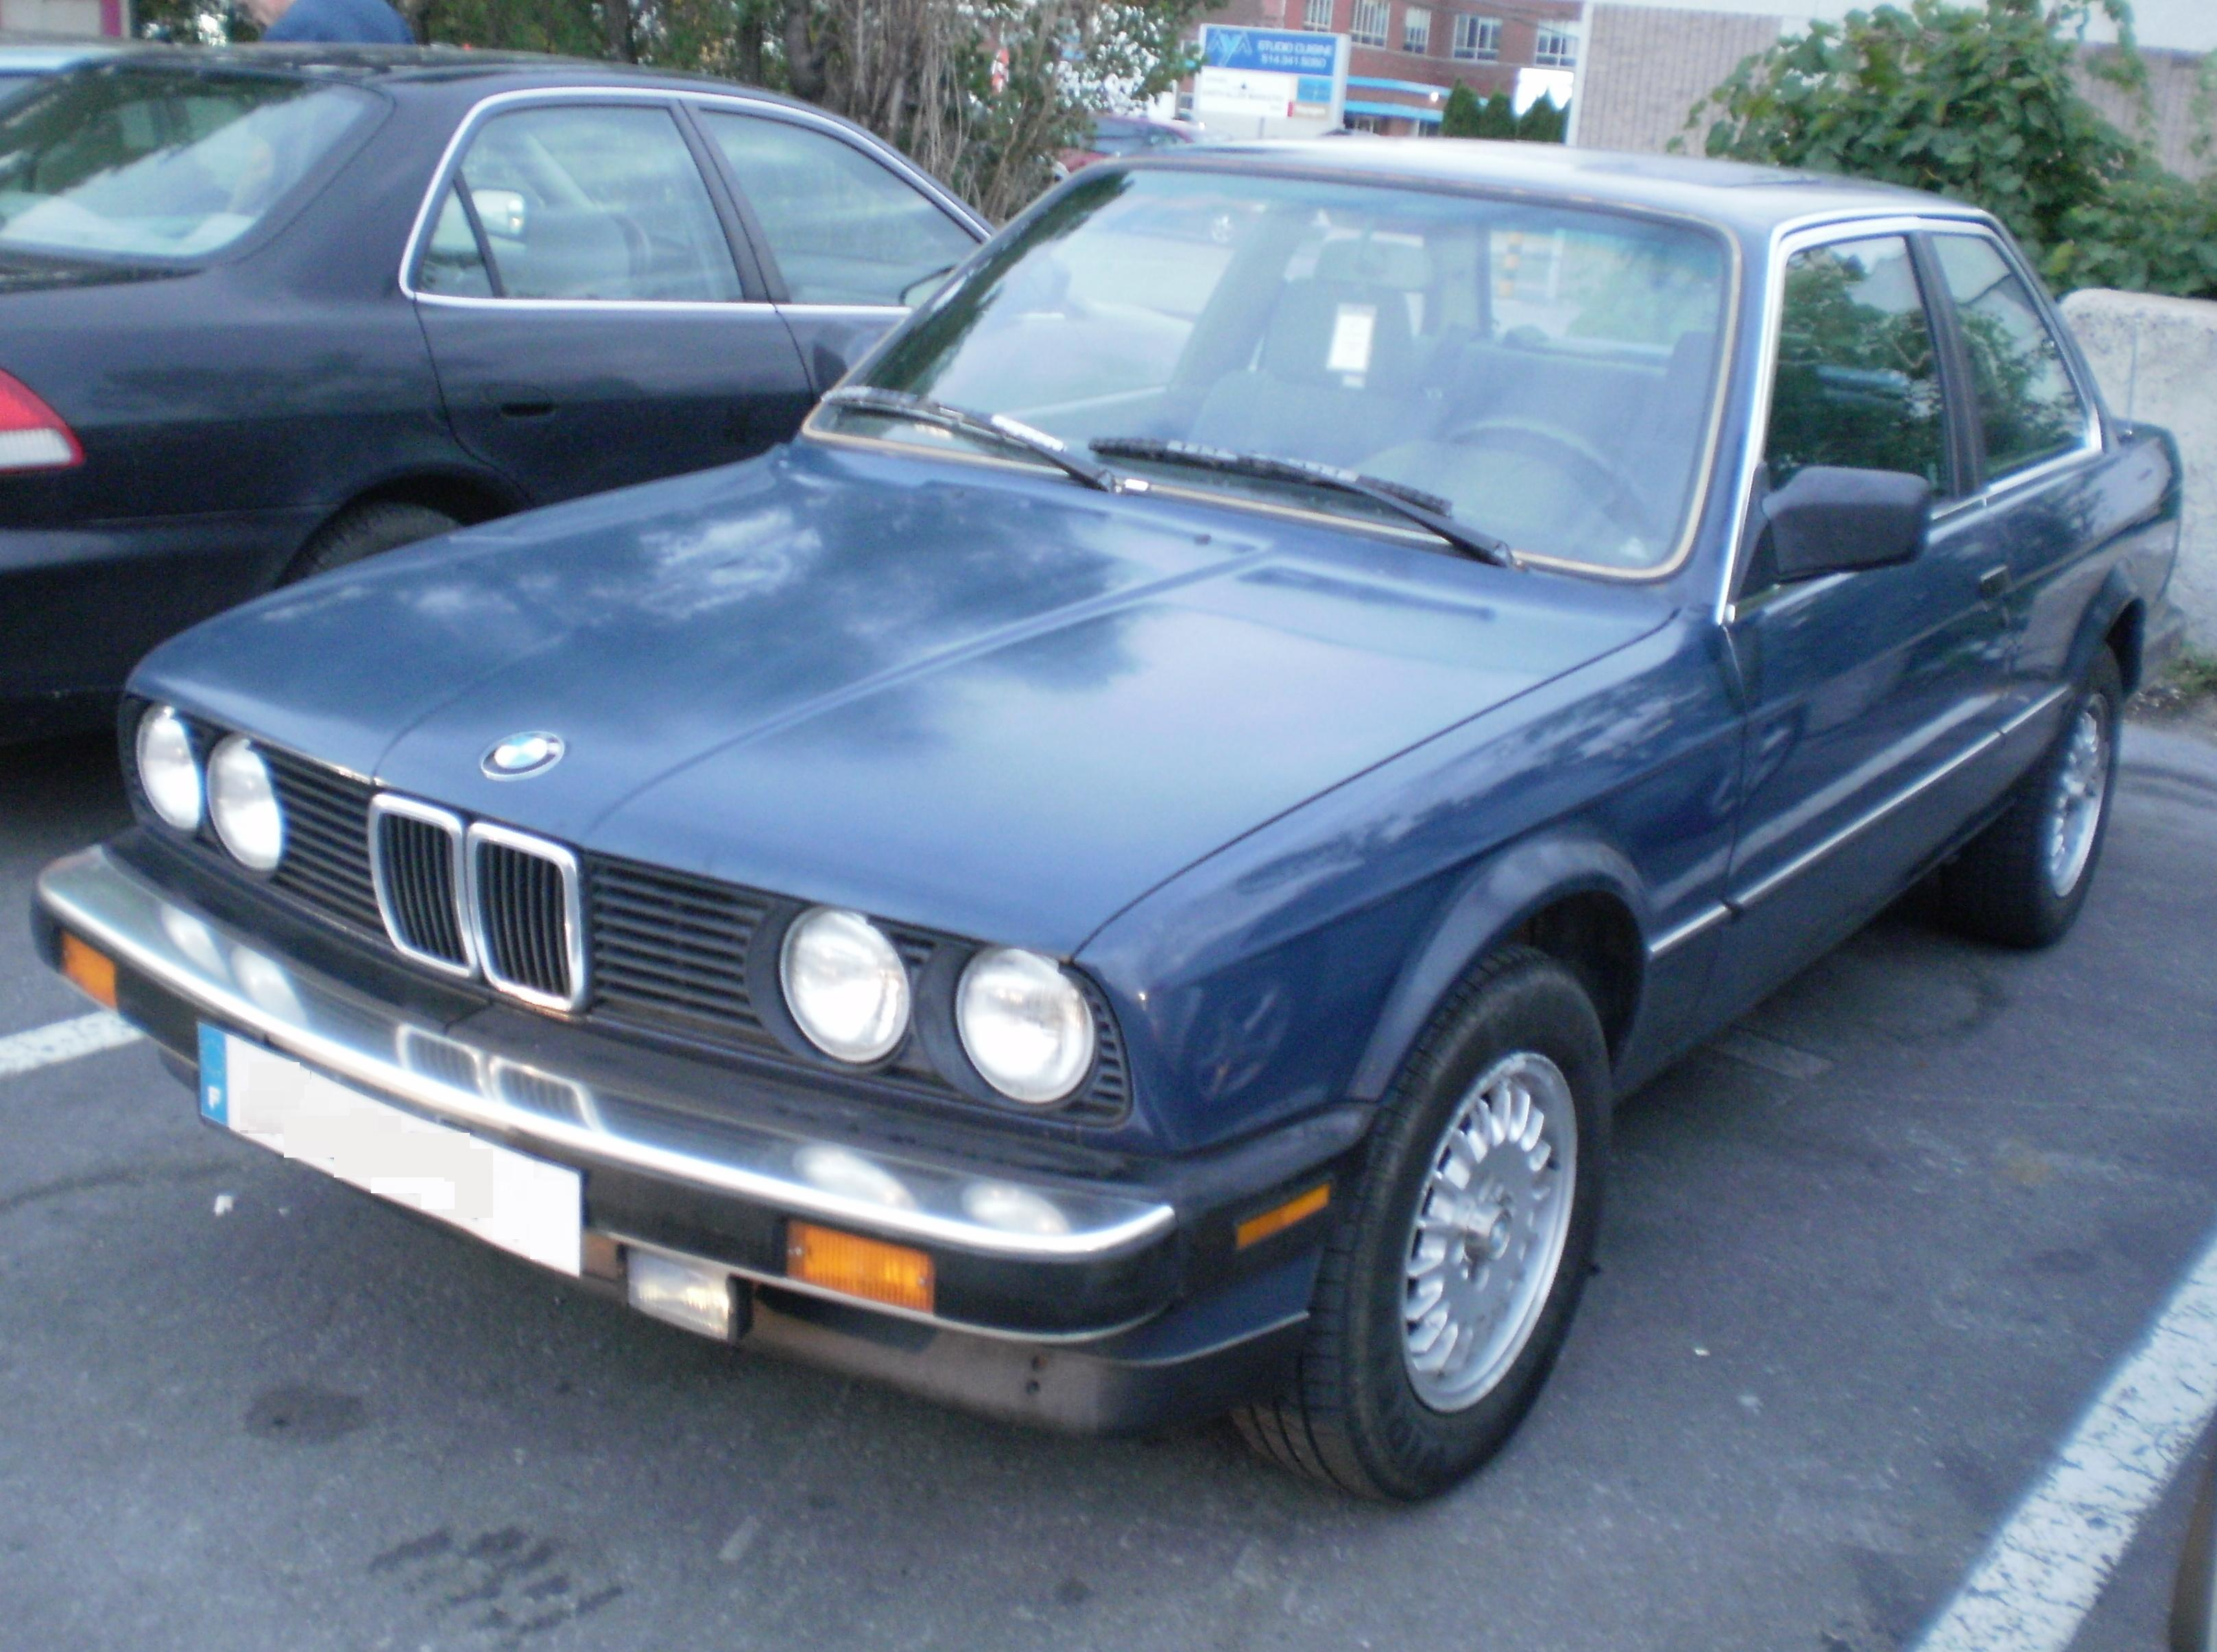 jaw sale white photo an fan gallery into turn for alpine school will dropping old news you bmw